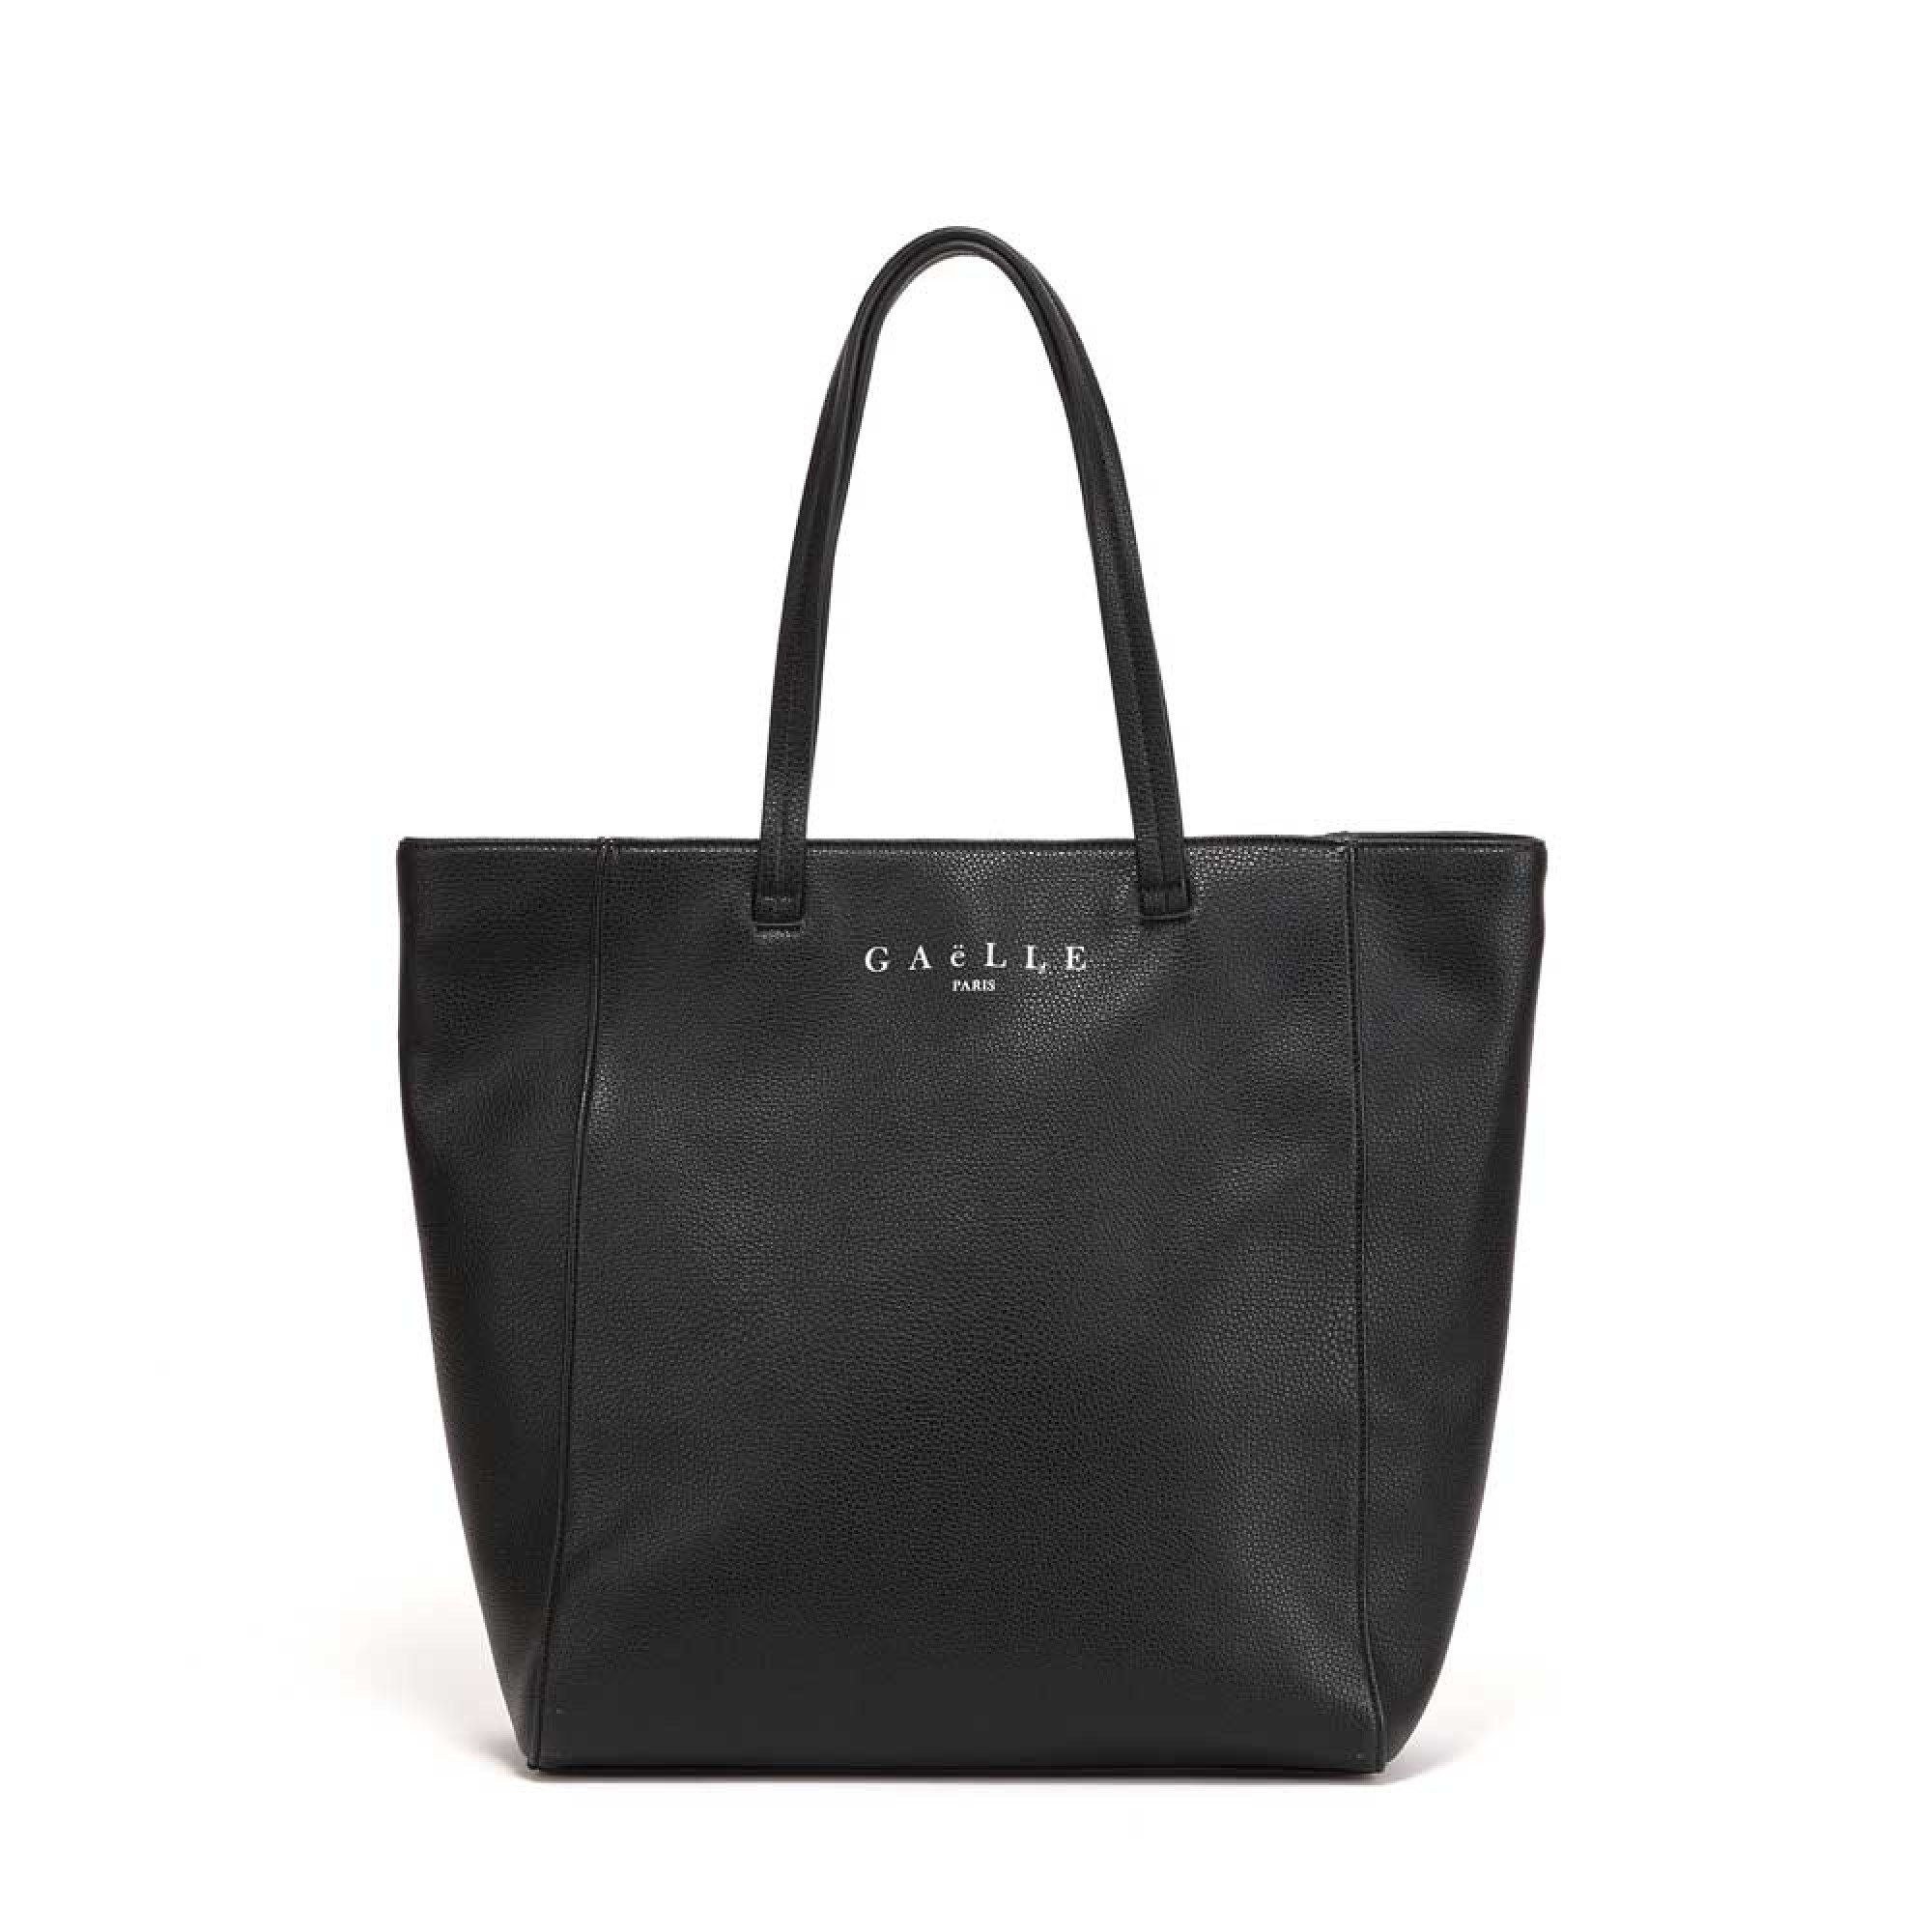 SHOPPER - GBDA1427 - GAELLE PARIS